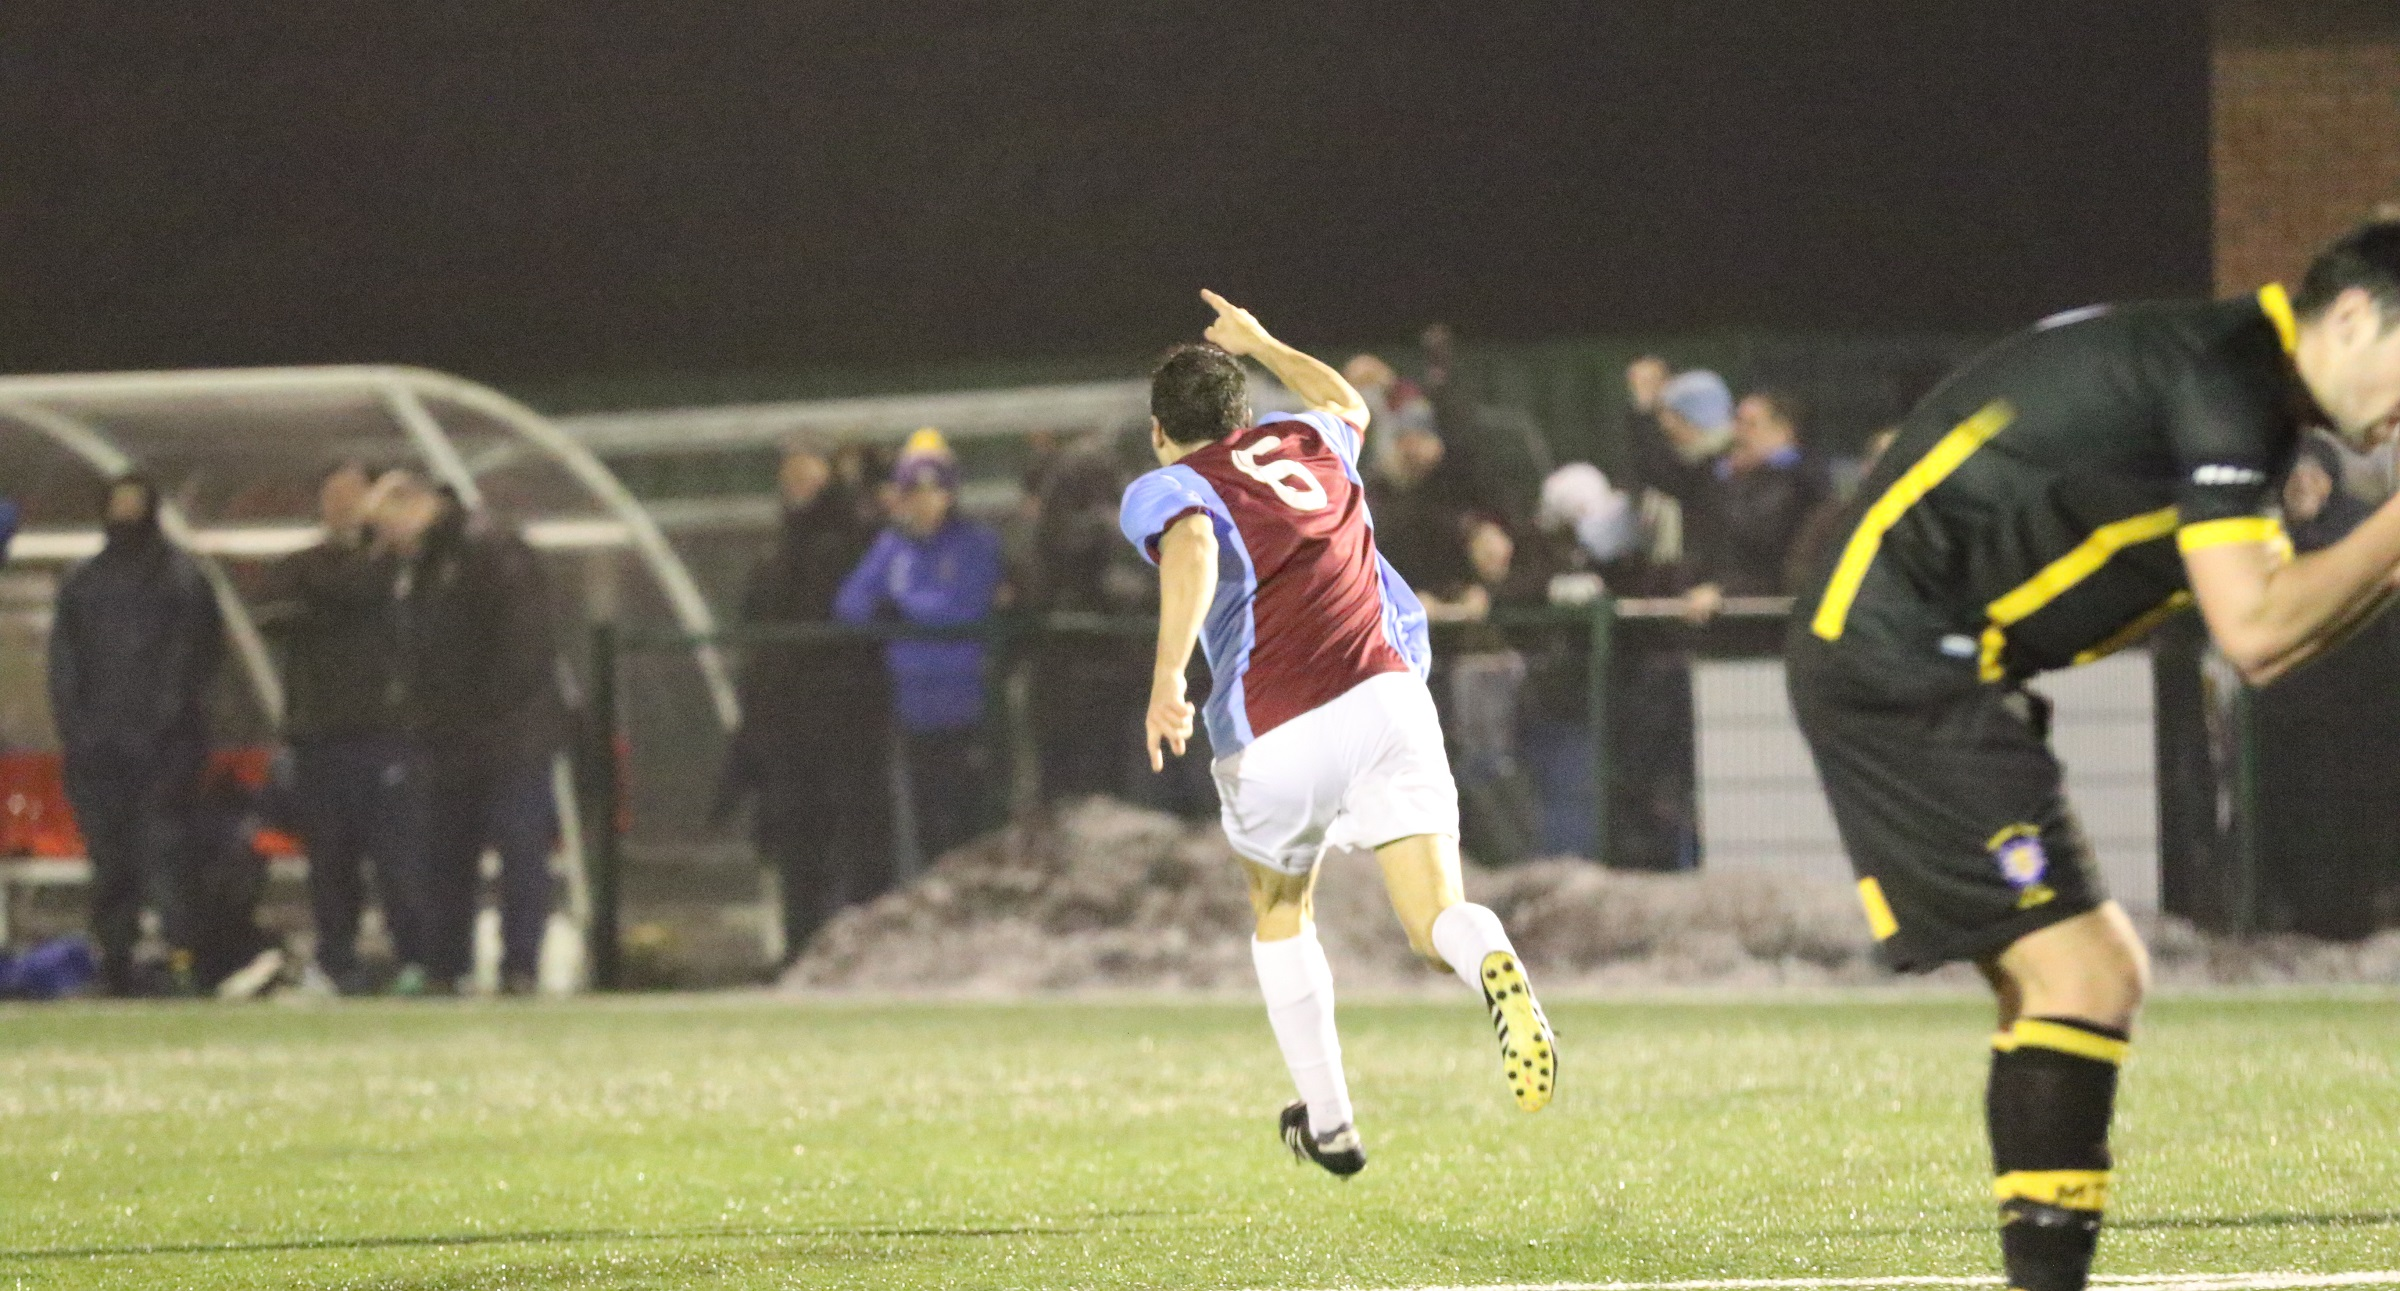 In Pictures: South Shields 3-3 Morpeth Town (9-10 on pens)